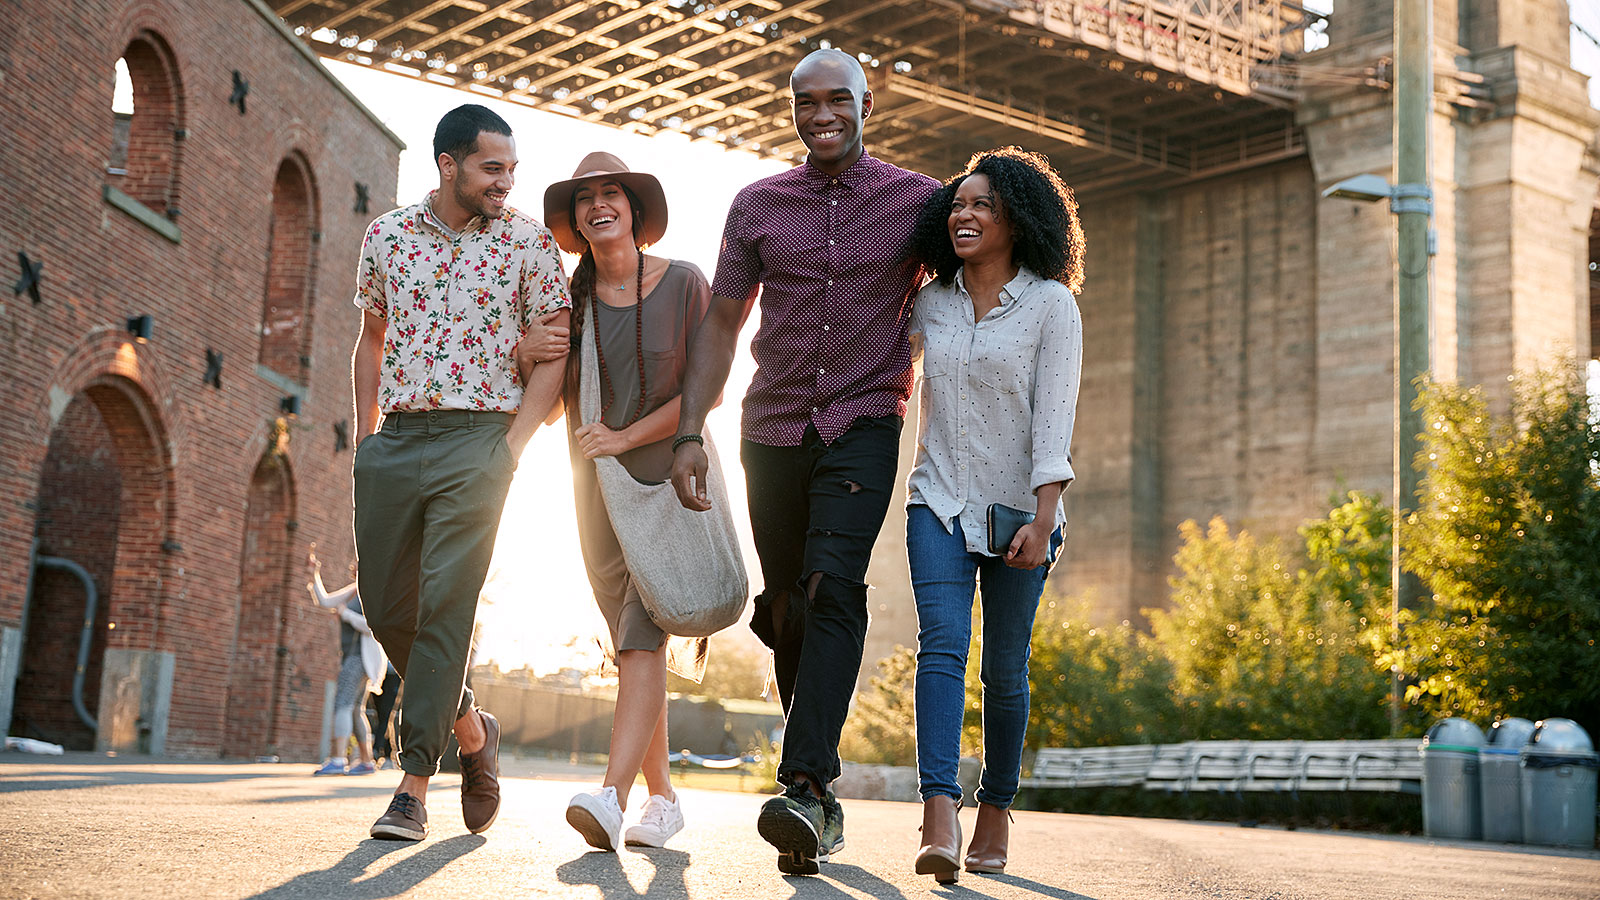 Living in walkable cities could make you more successful